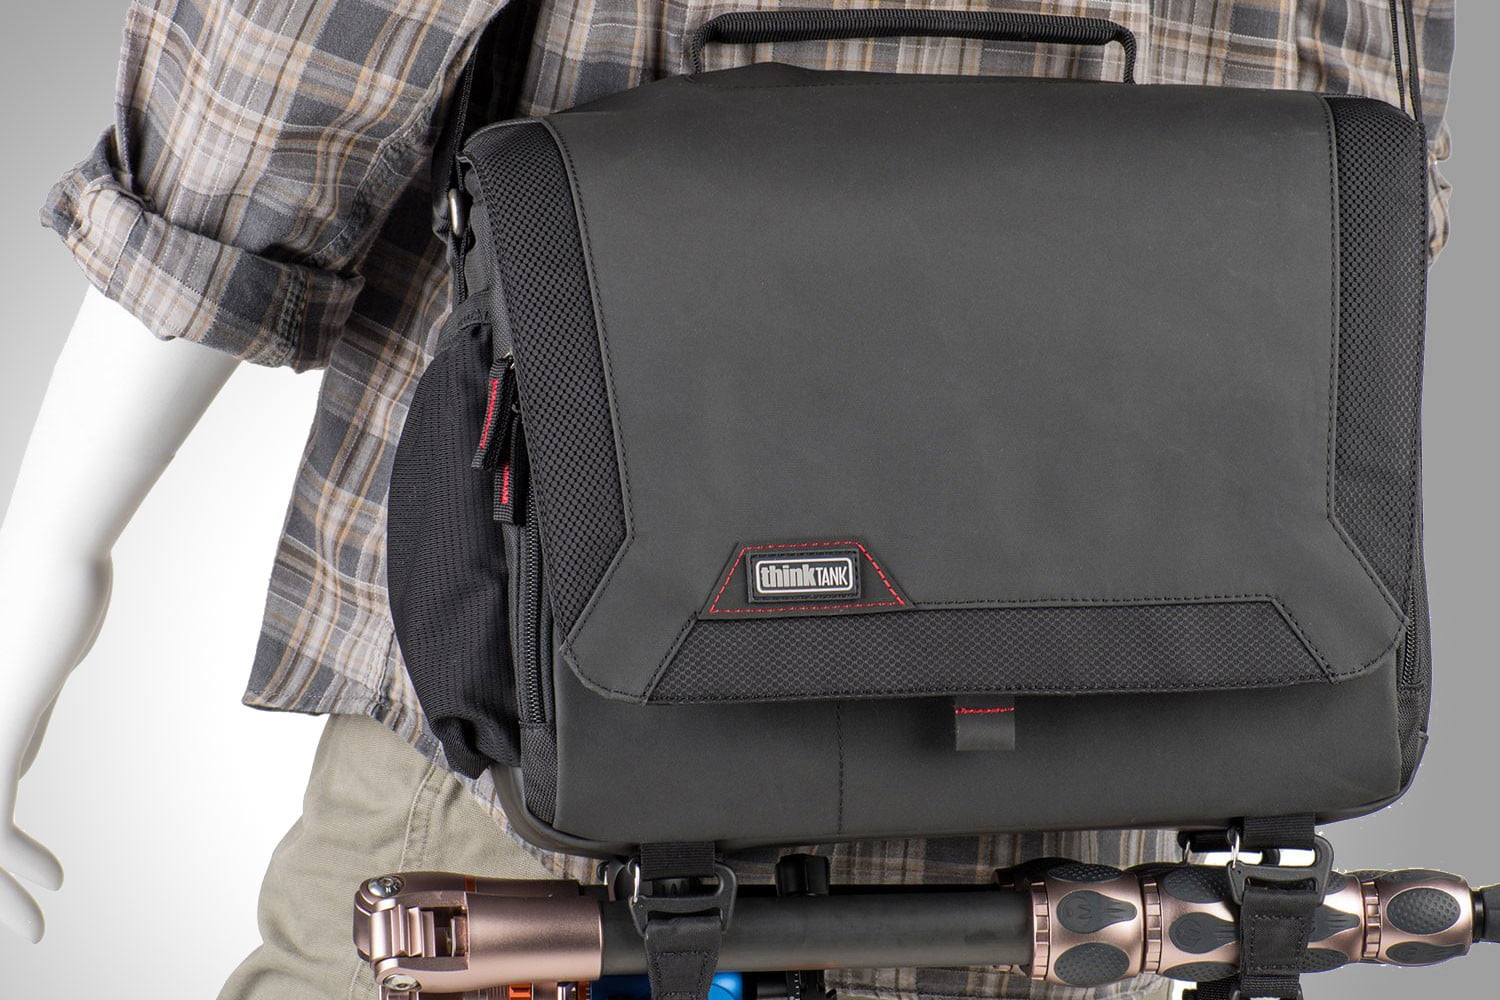 Https Cool Tech Astronaut Pee Ripe With Razer Starcraft 2 Sling Bag Think Tank Spectral Camera Bags 1500x1000